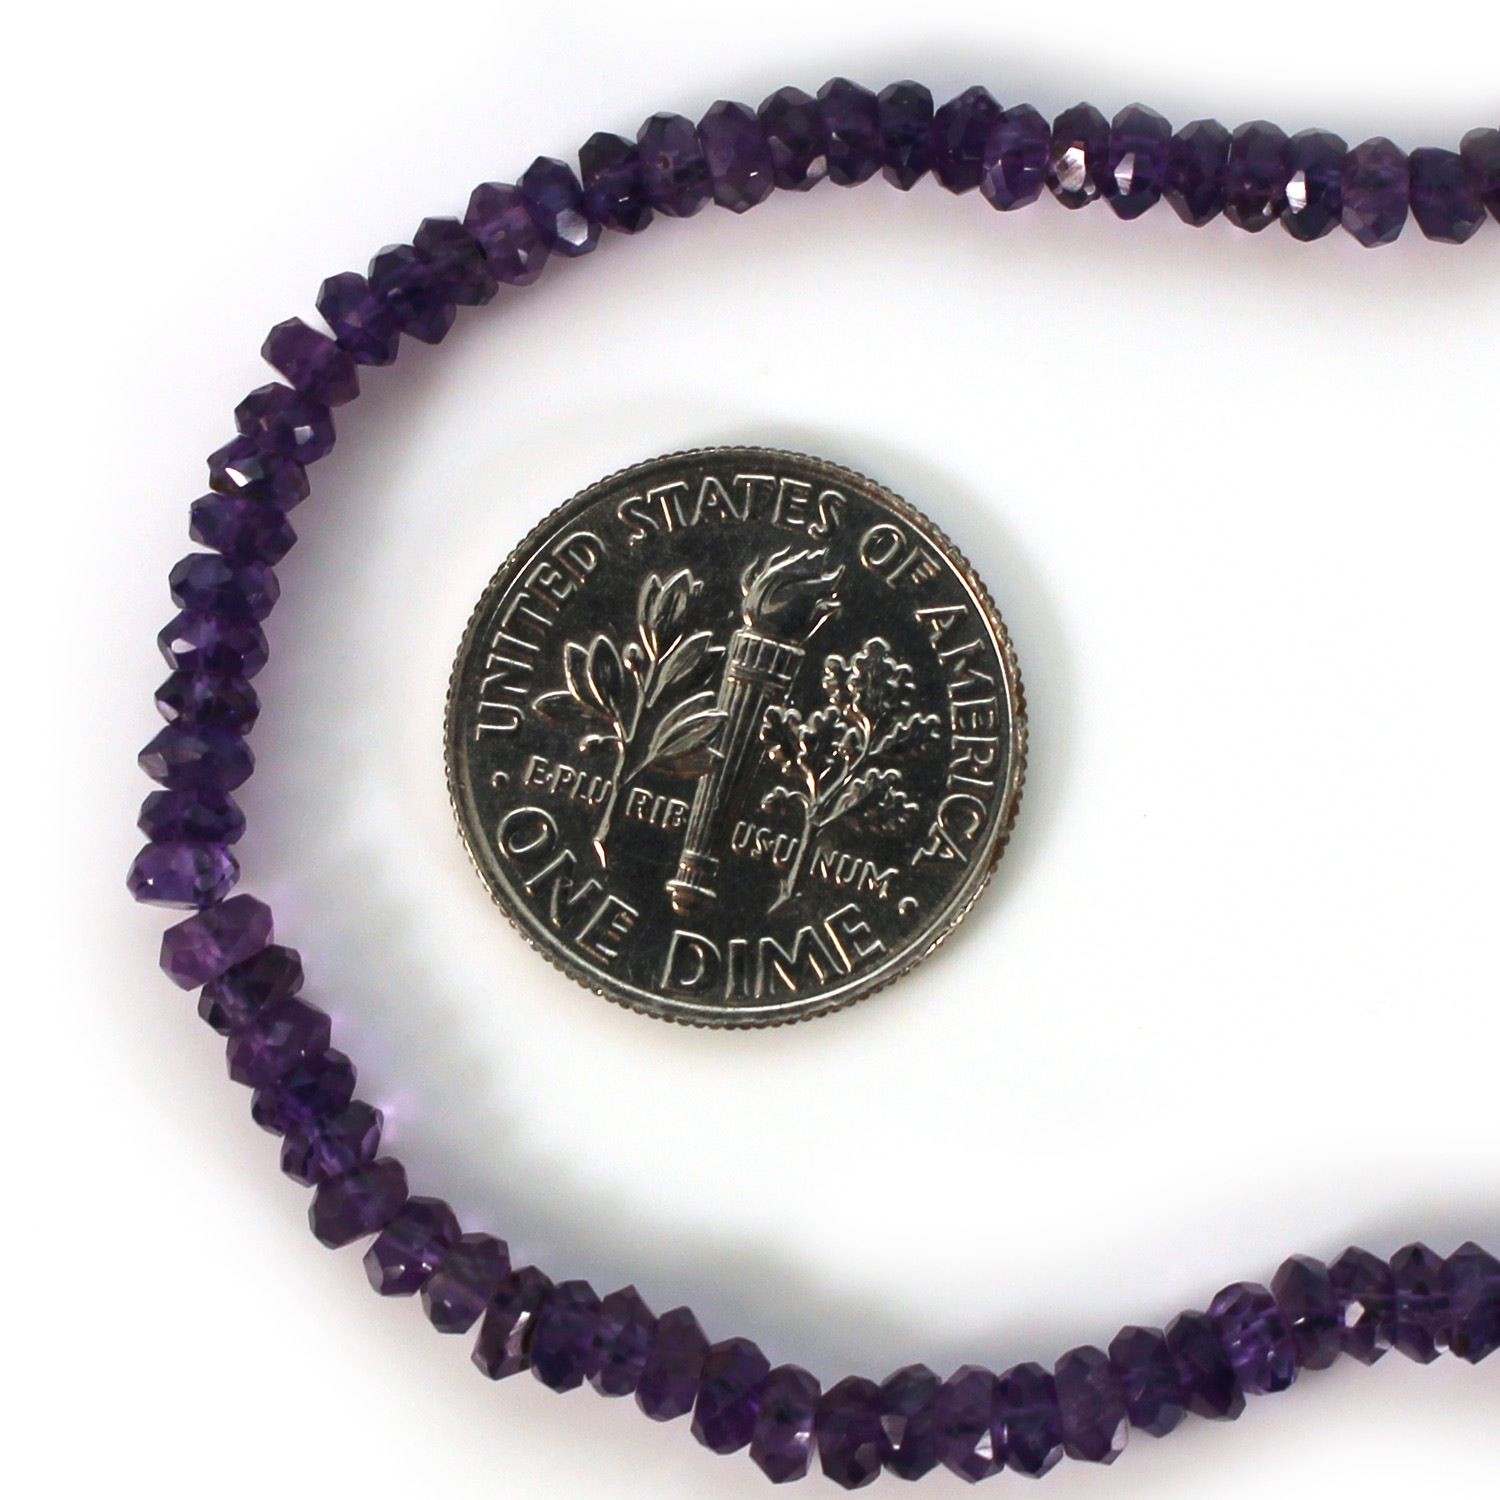 Gemstone beads - Amethyst Faceted Rondelle - 2.5- 3mm - 13.5 inches full strand